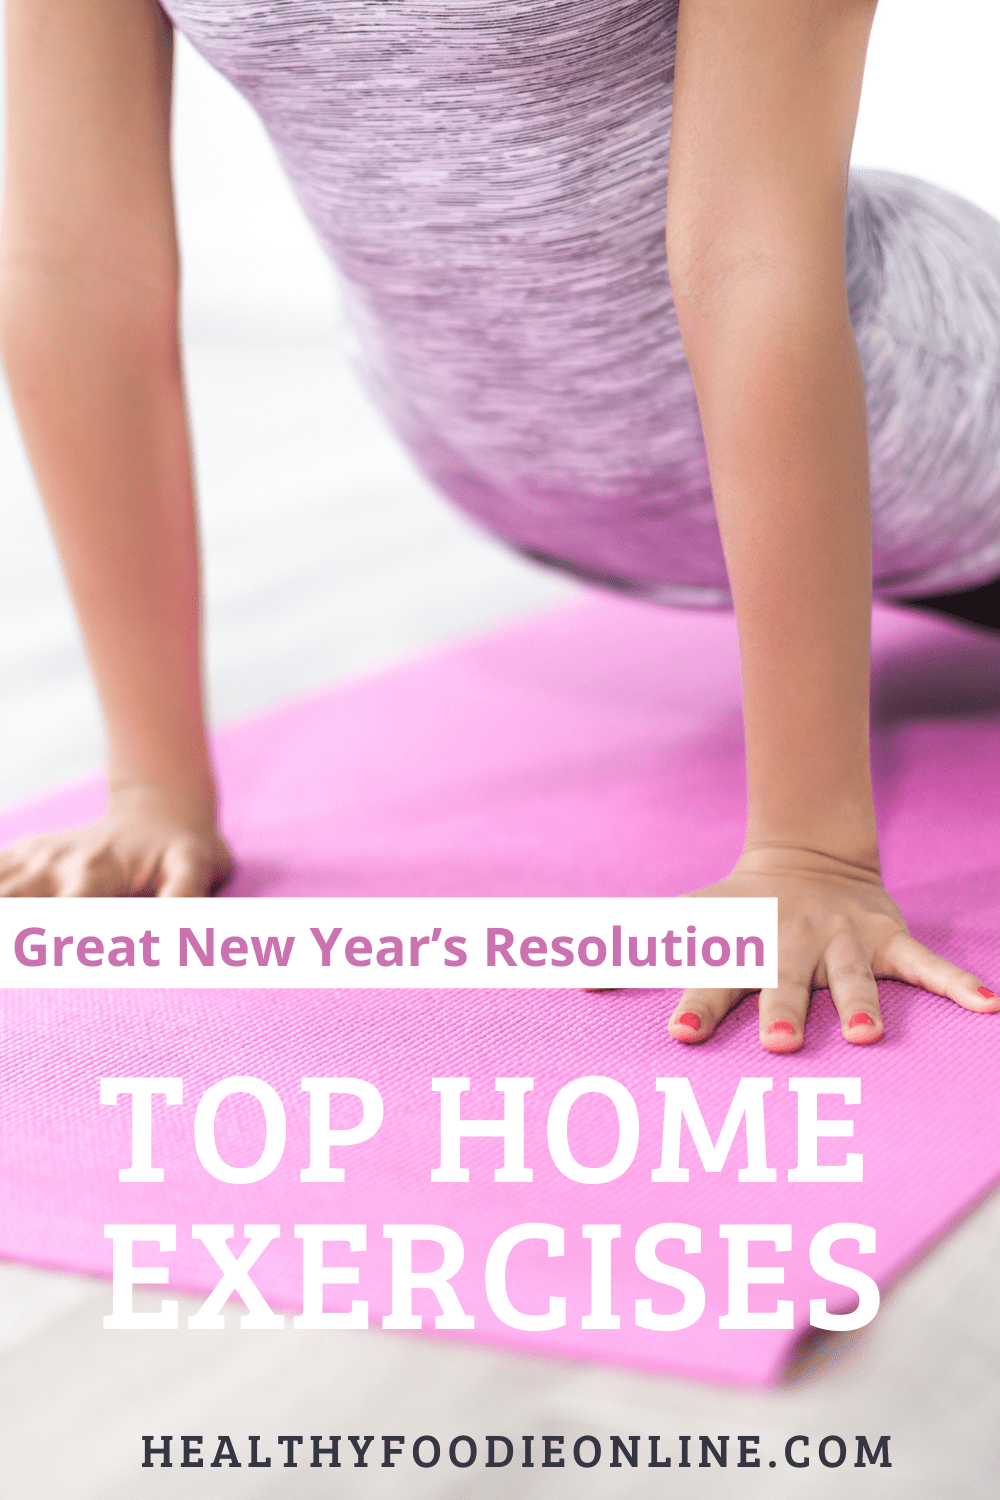 Top Home Exercises